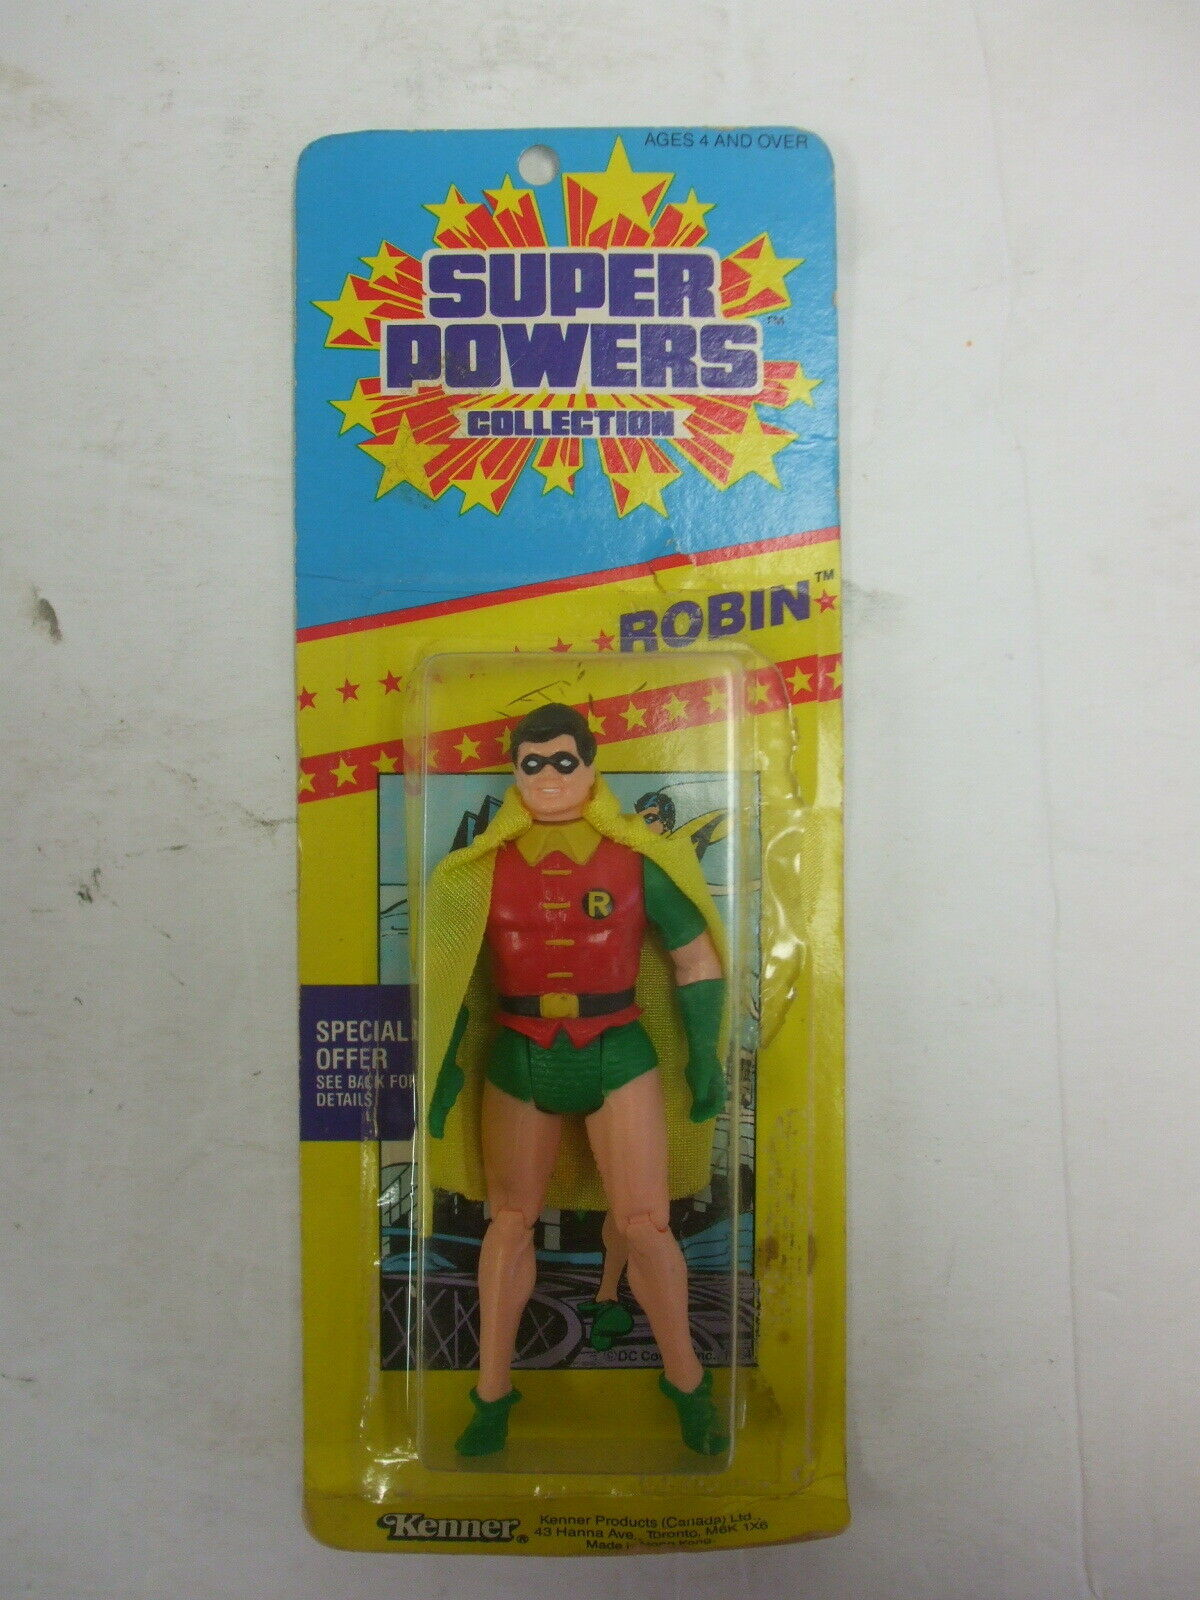 Kenner DC Super Powers Sammlung Robin (small card)MOC